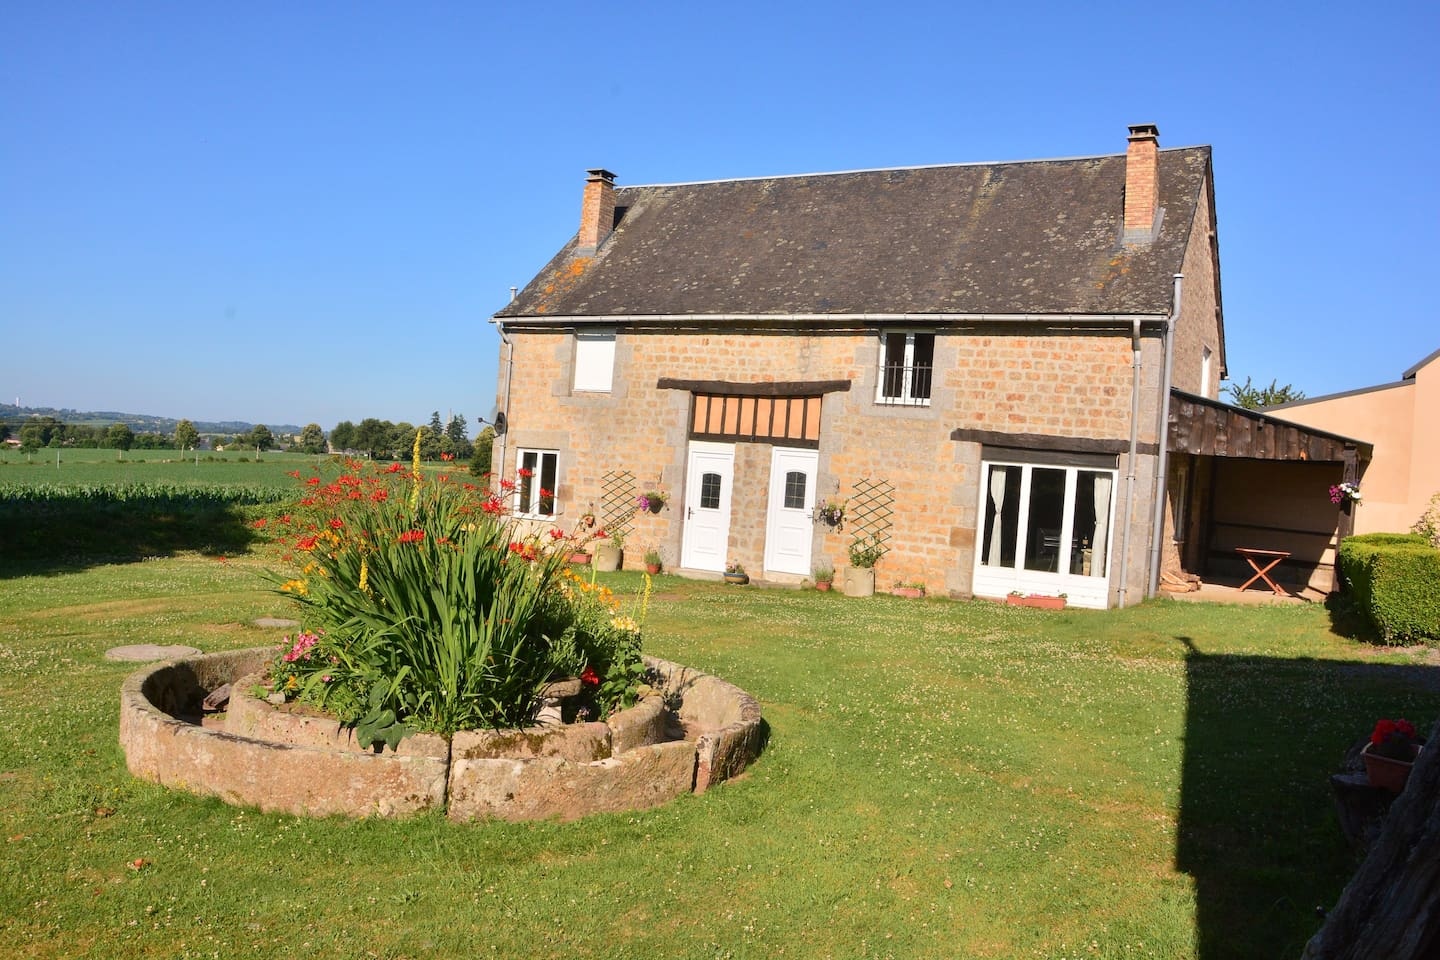 Our Cottage - Gite 2 is the right side . Gite 1 is on the left.